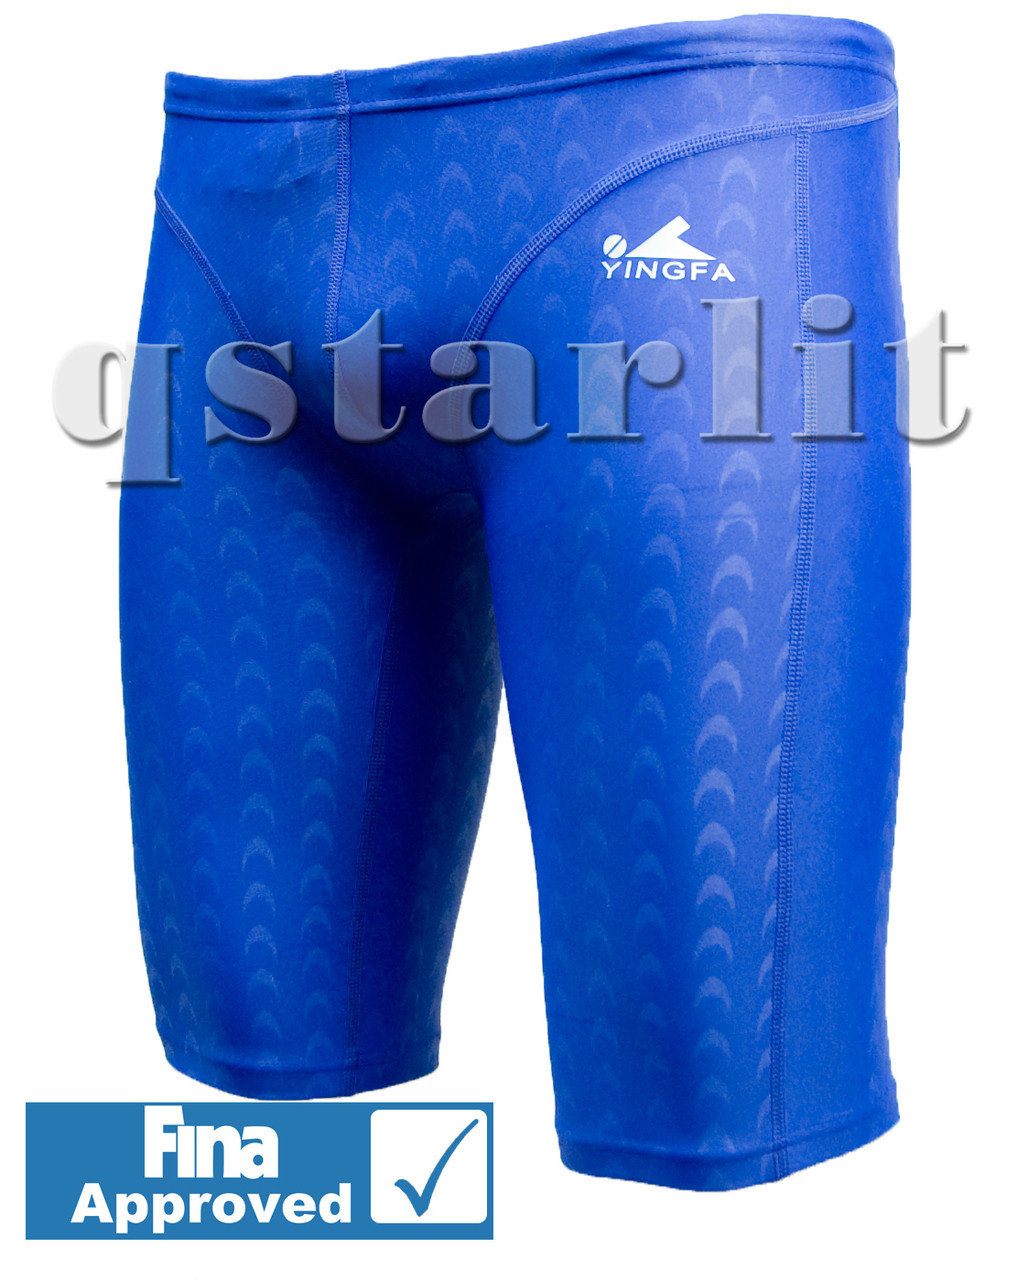 Boys Male Competition Racing Fast Skin Swimwear Jammer Trunk Size 26 S Blue